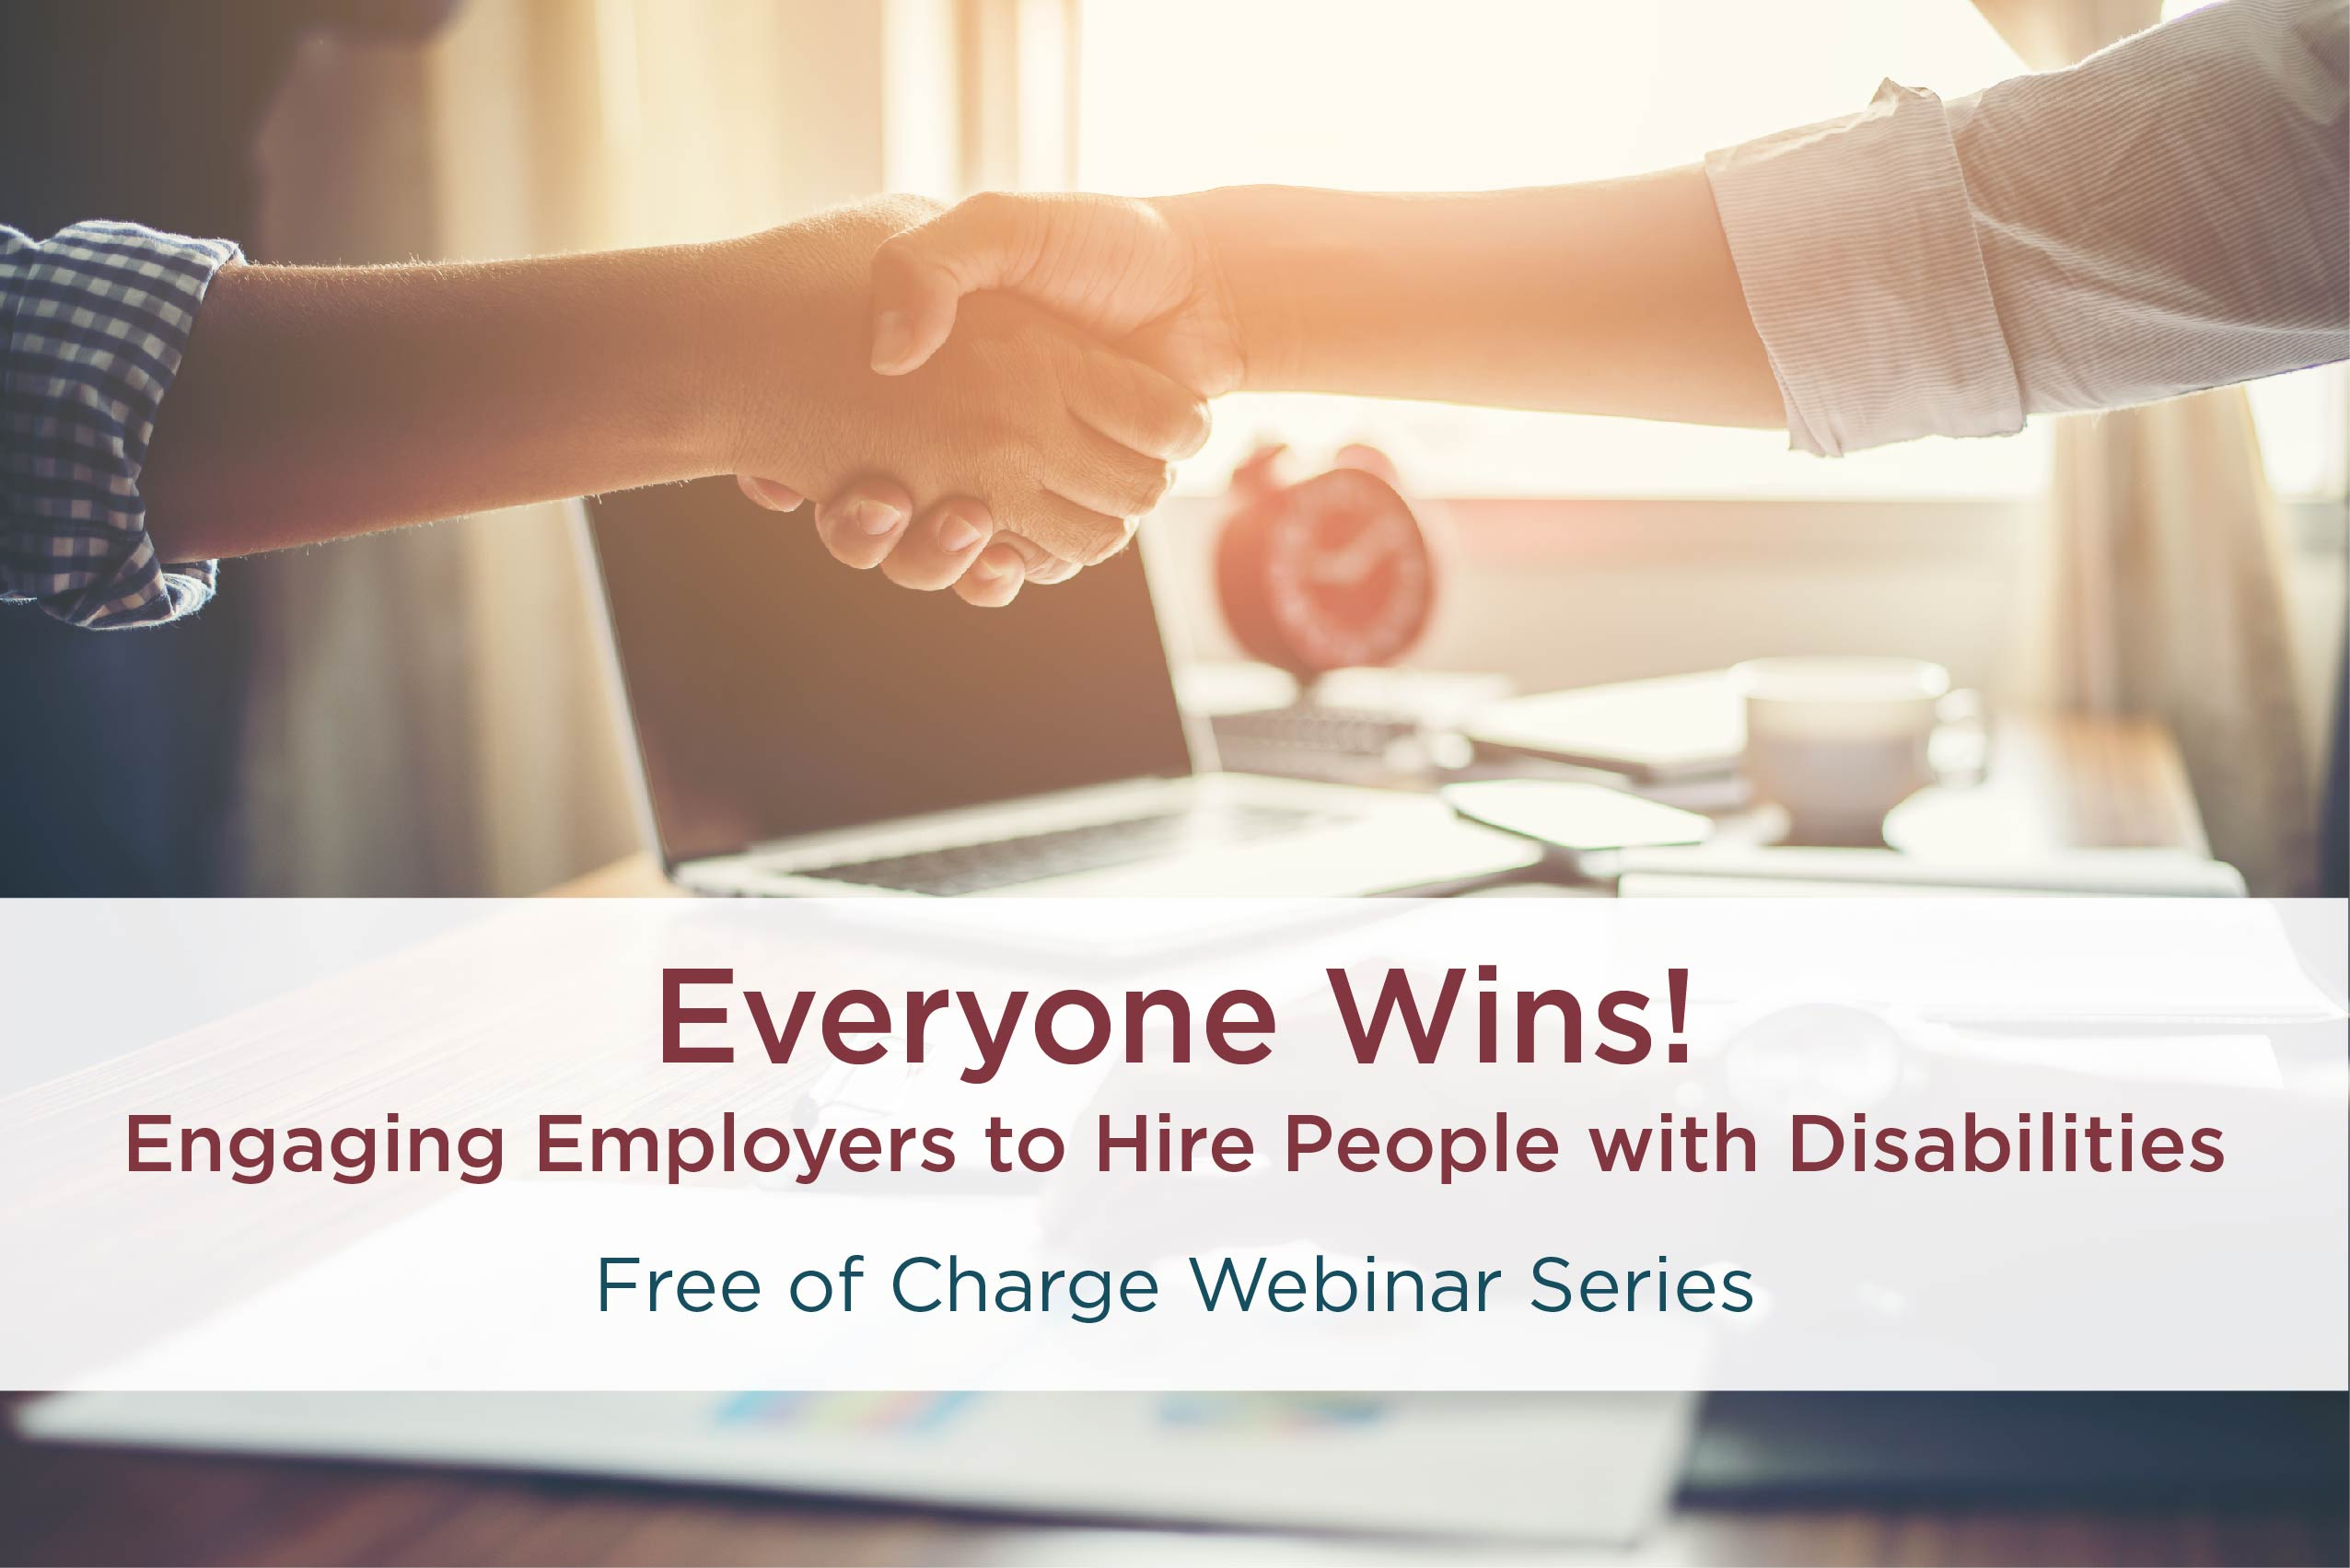 Everyone Wins! Engaging Employers to Hire People with Disabilities. Free of Charge Webinar Series